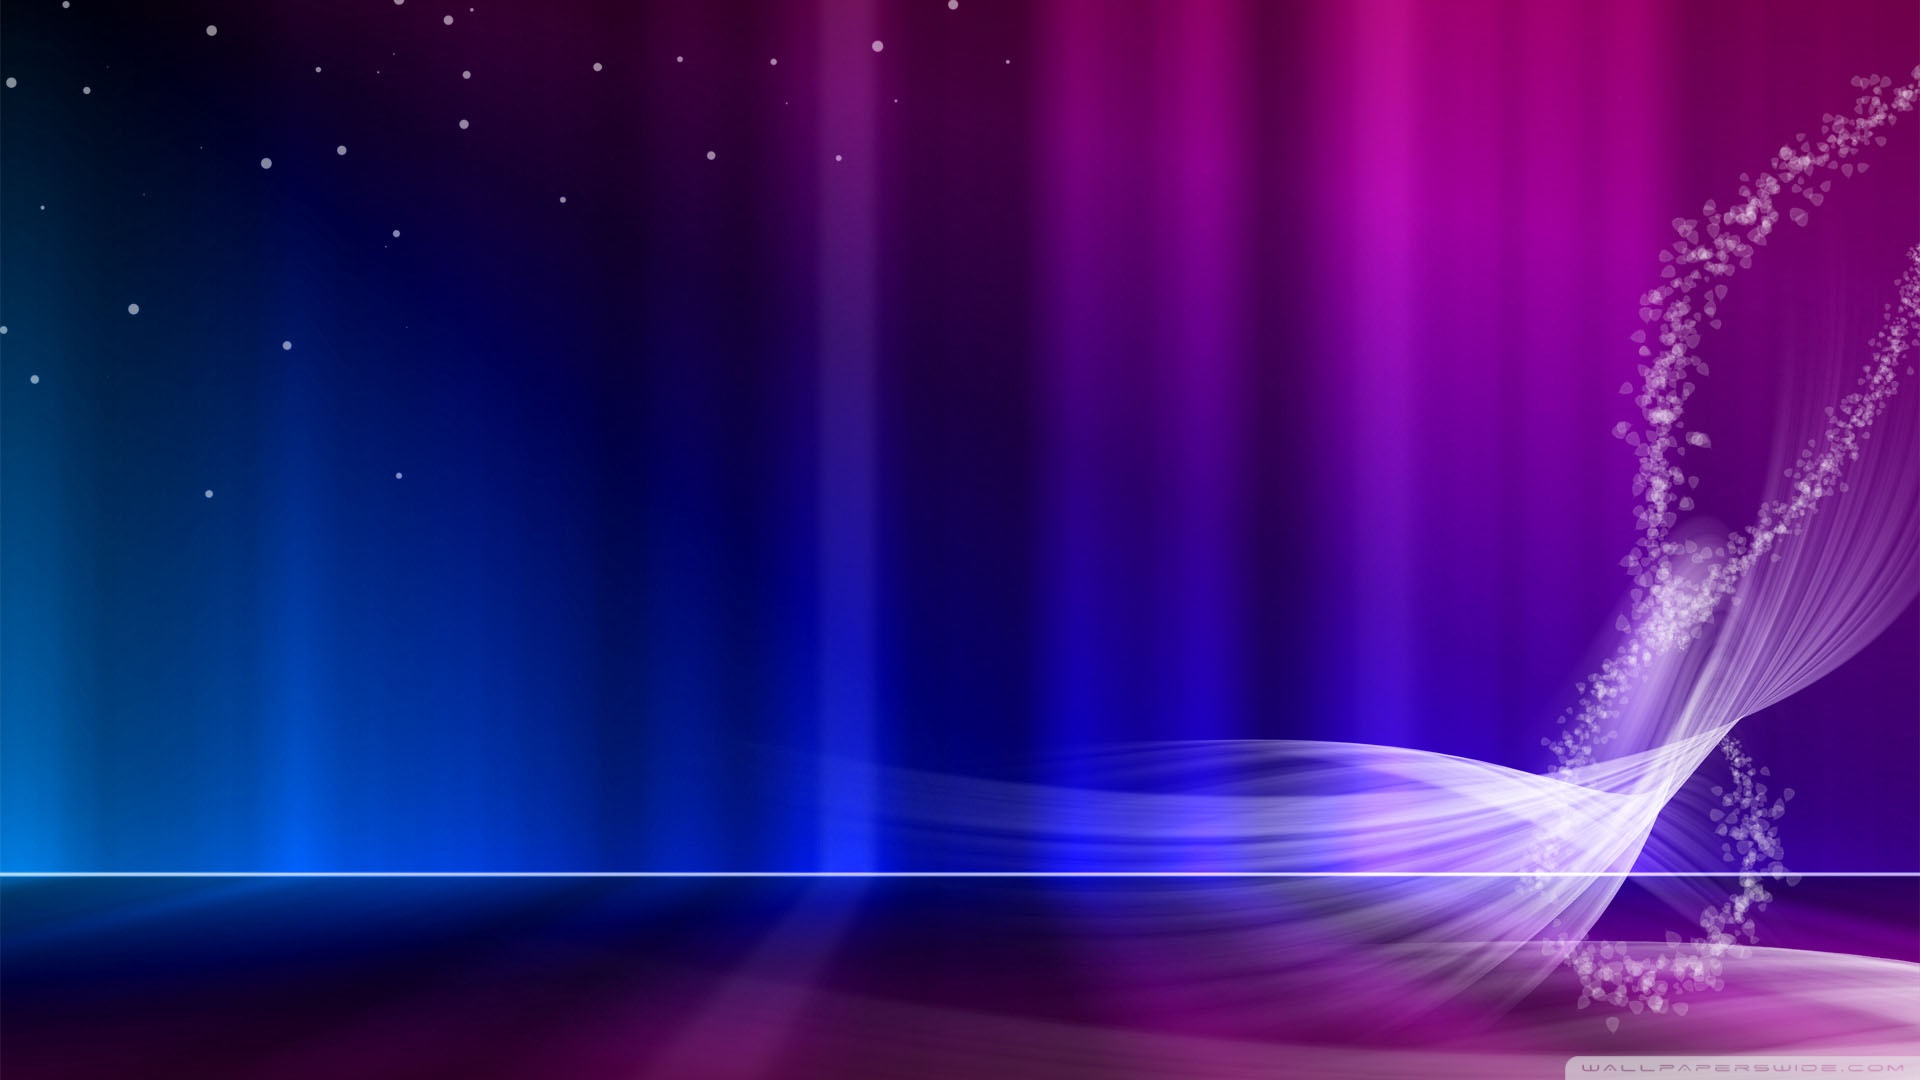 Background Color wallpaper   870396 1920x1080